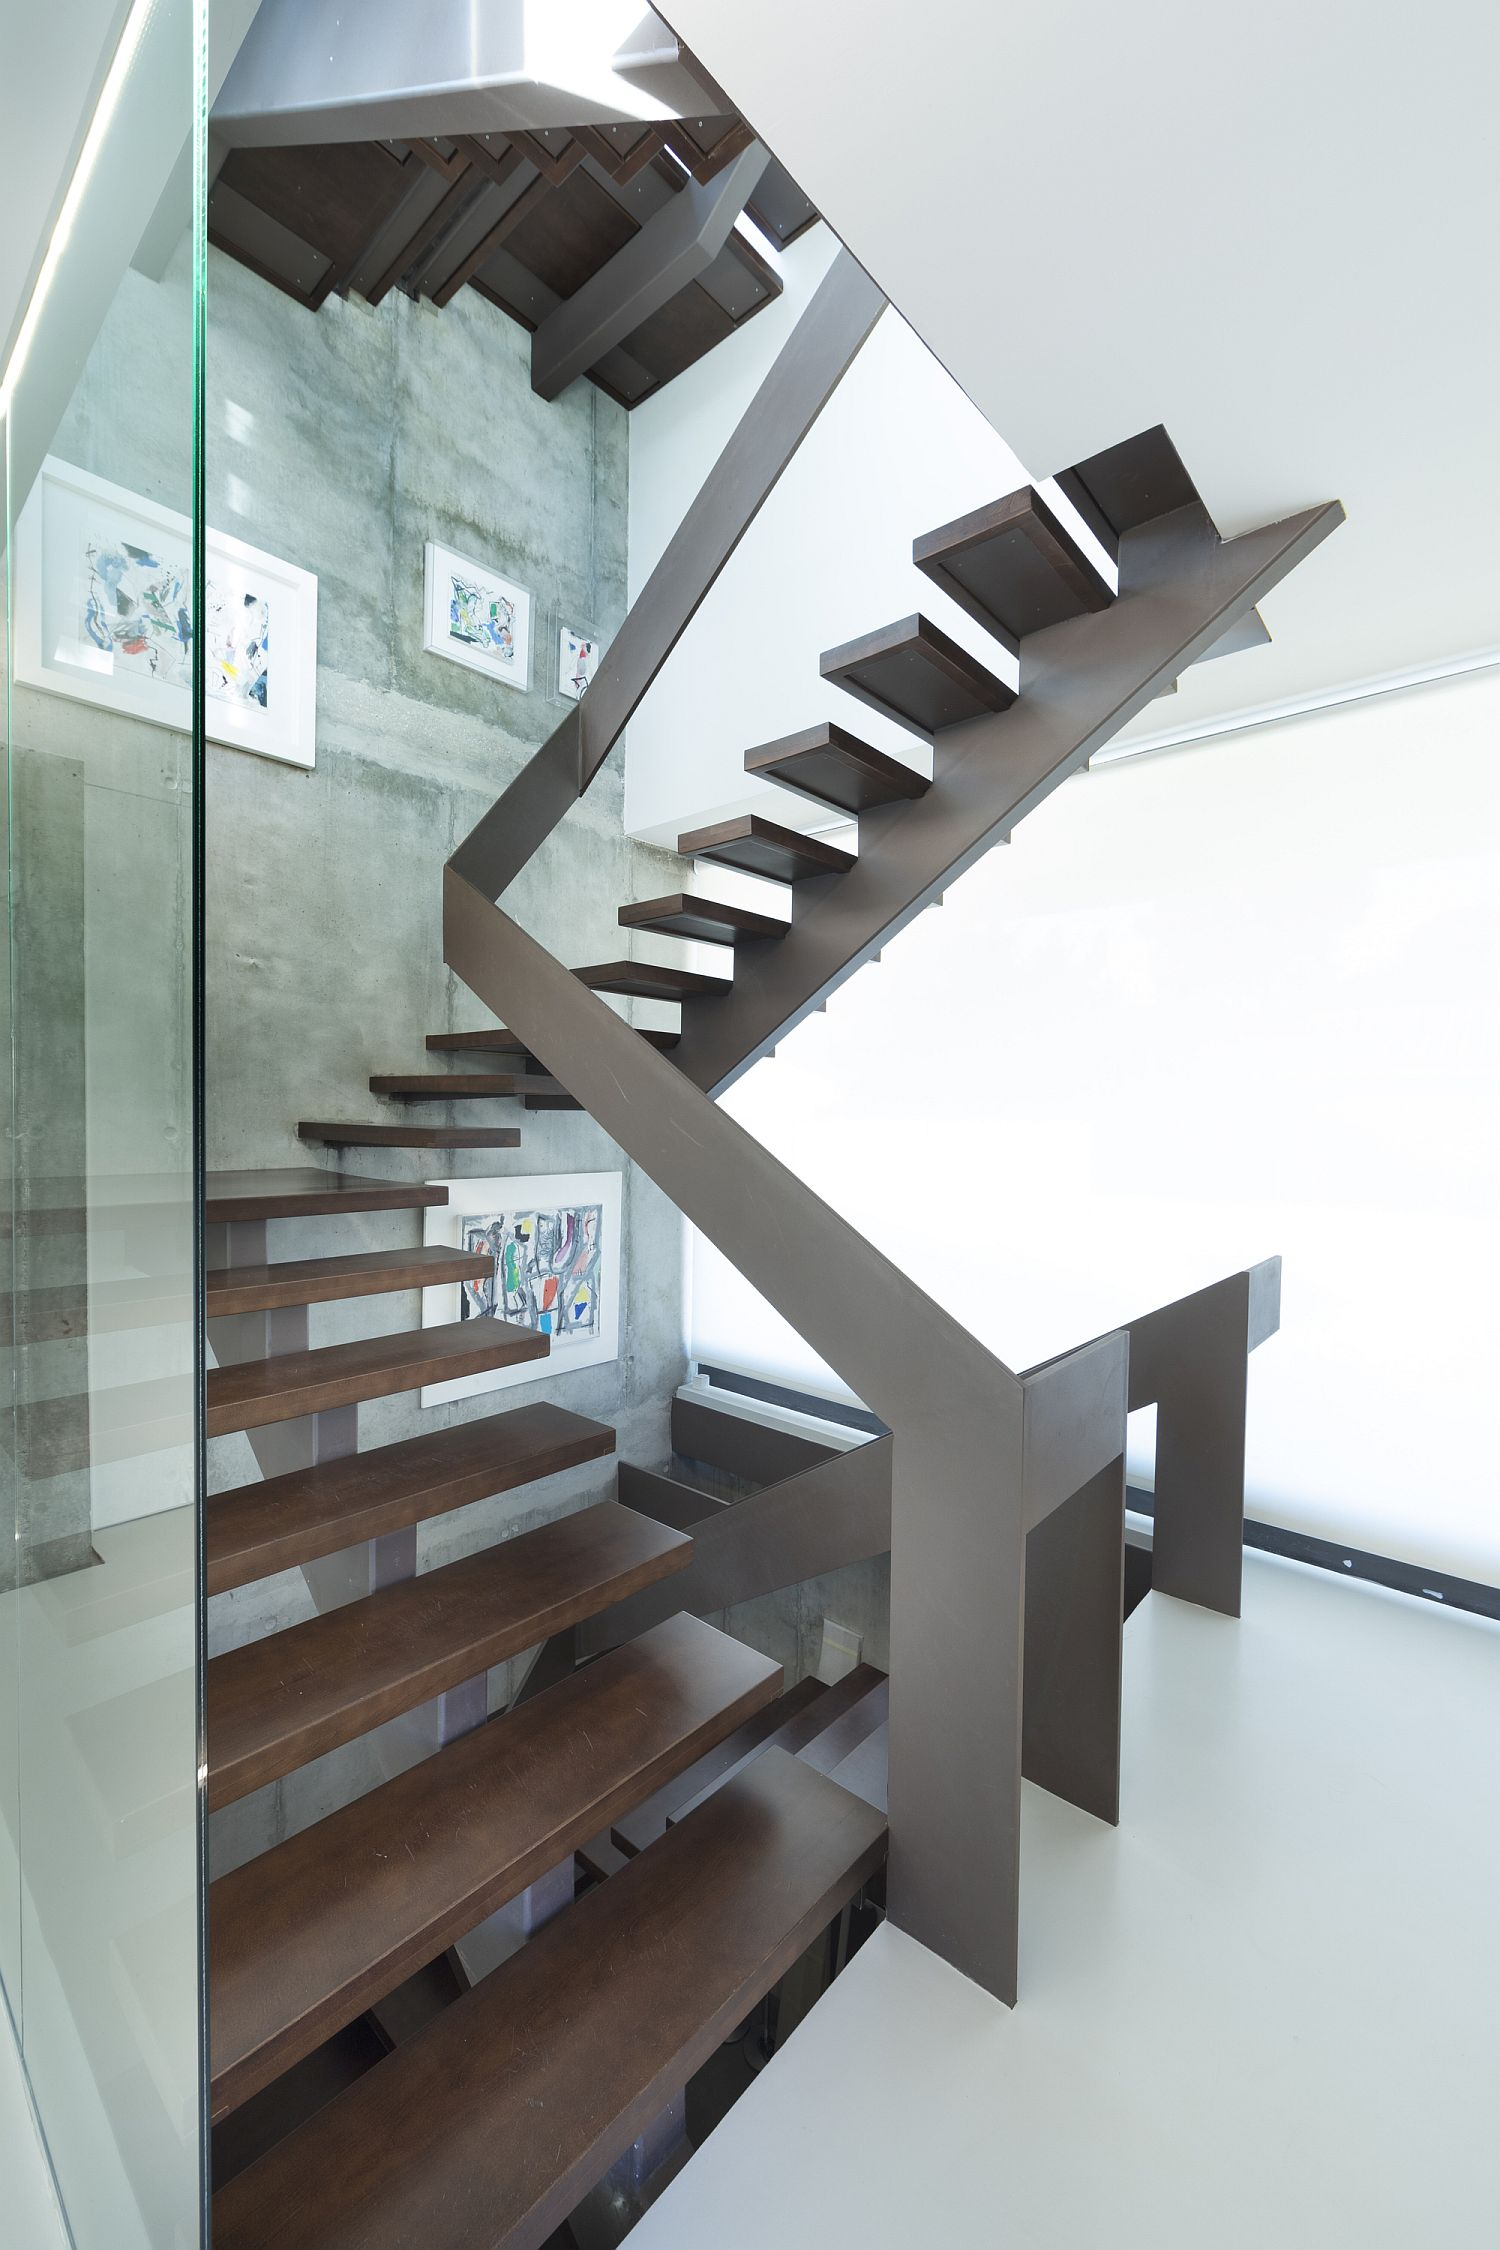 Glass and wood sculptural staircase for the modern home